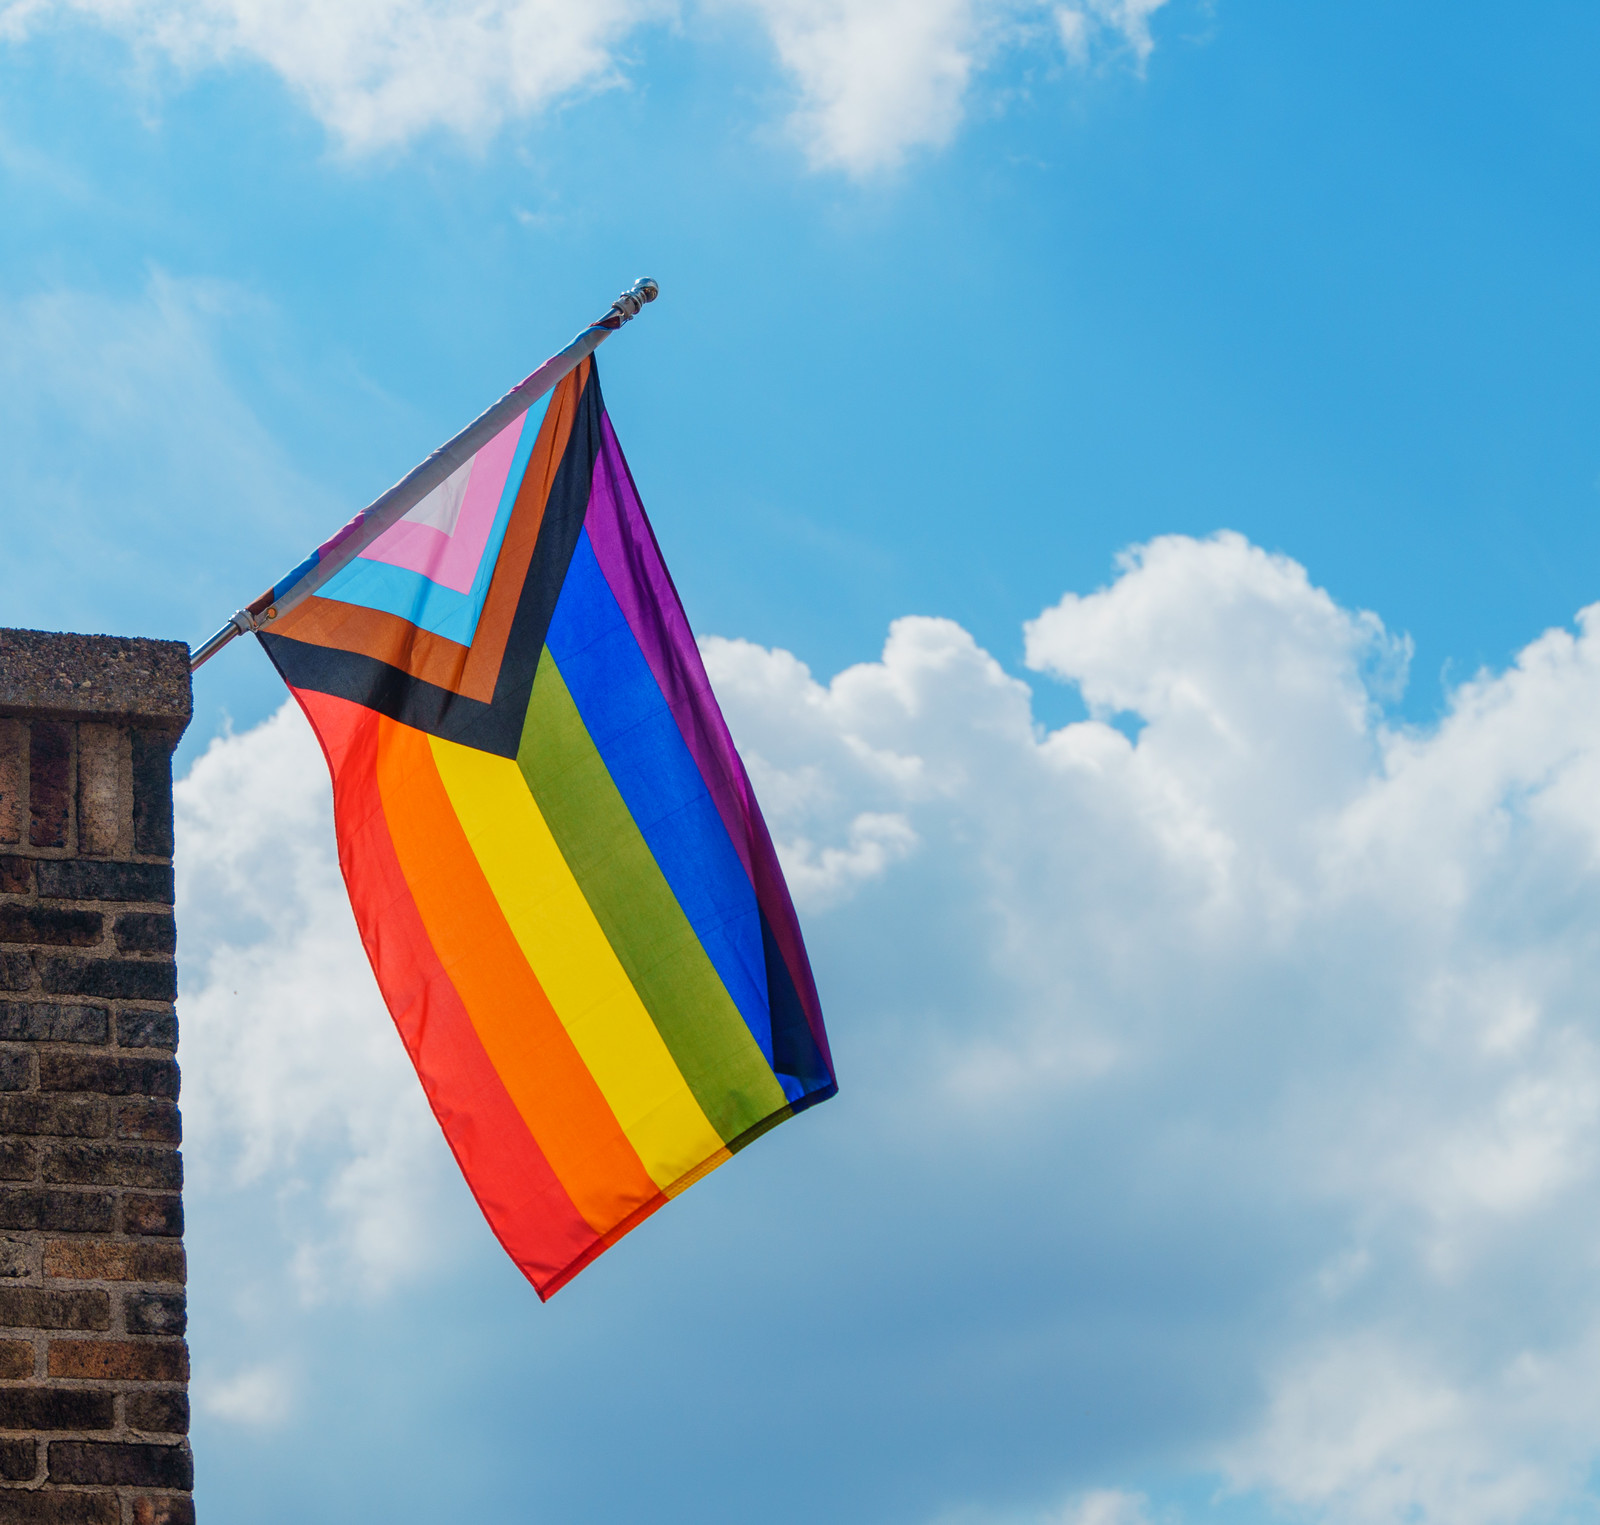 Thank you for Publishing my Photo of the Progress Pride Flag, PoPville